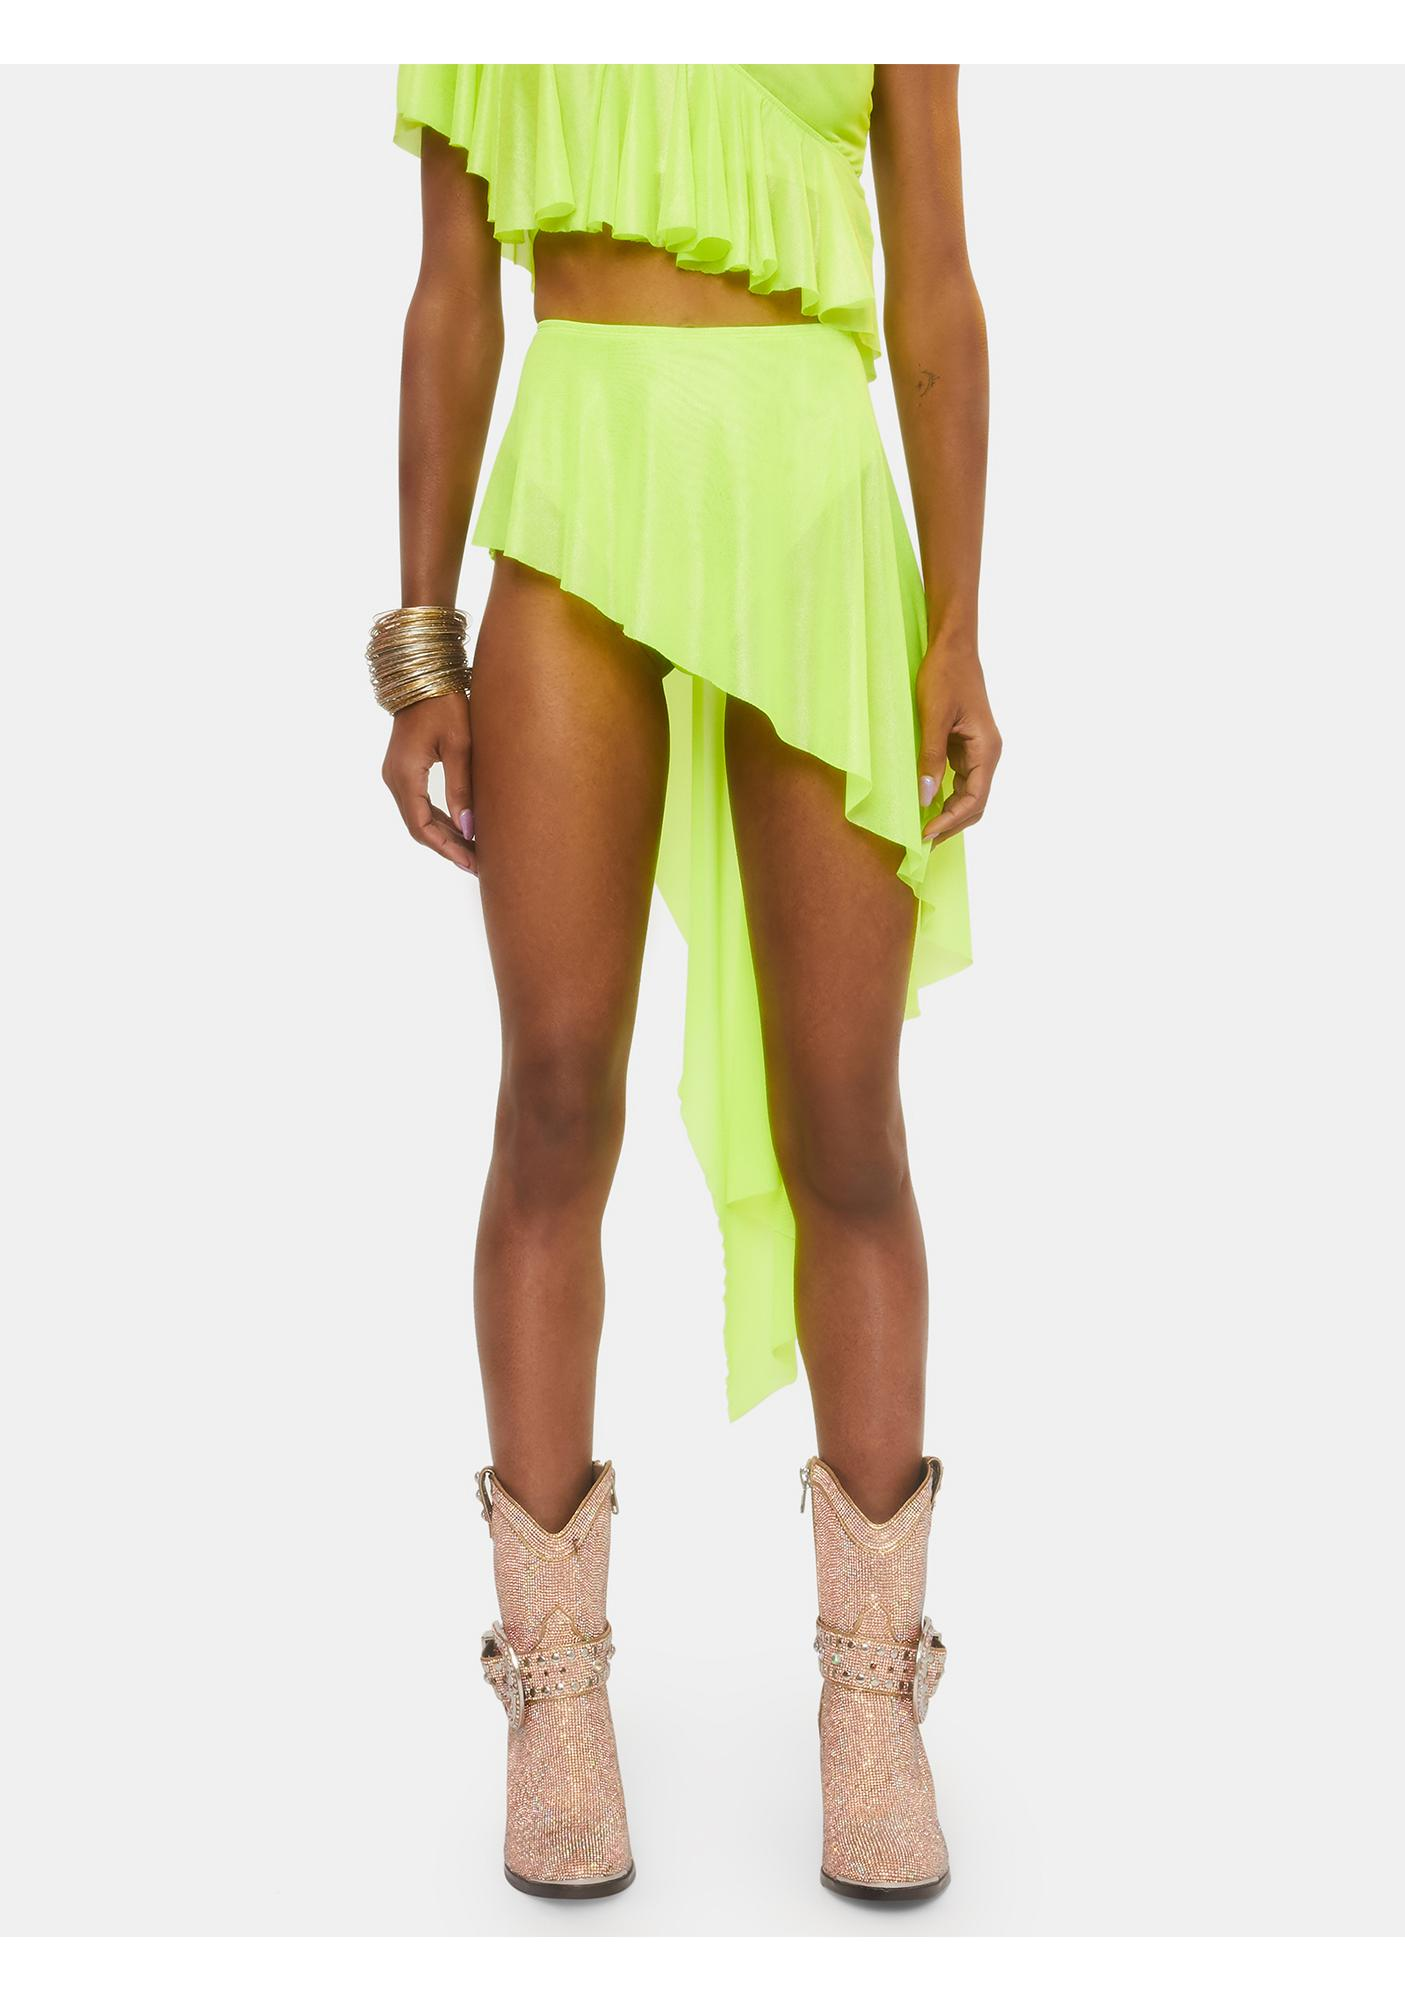 Club Exx Electric Chapel Mesh Ruffle Skirt